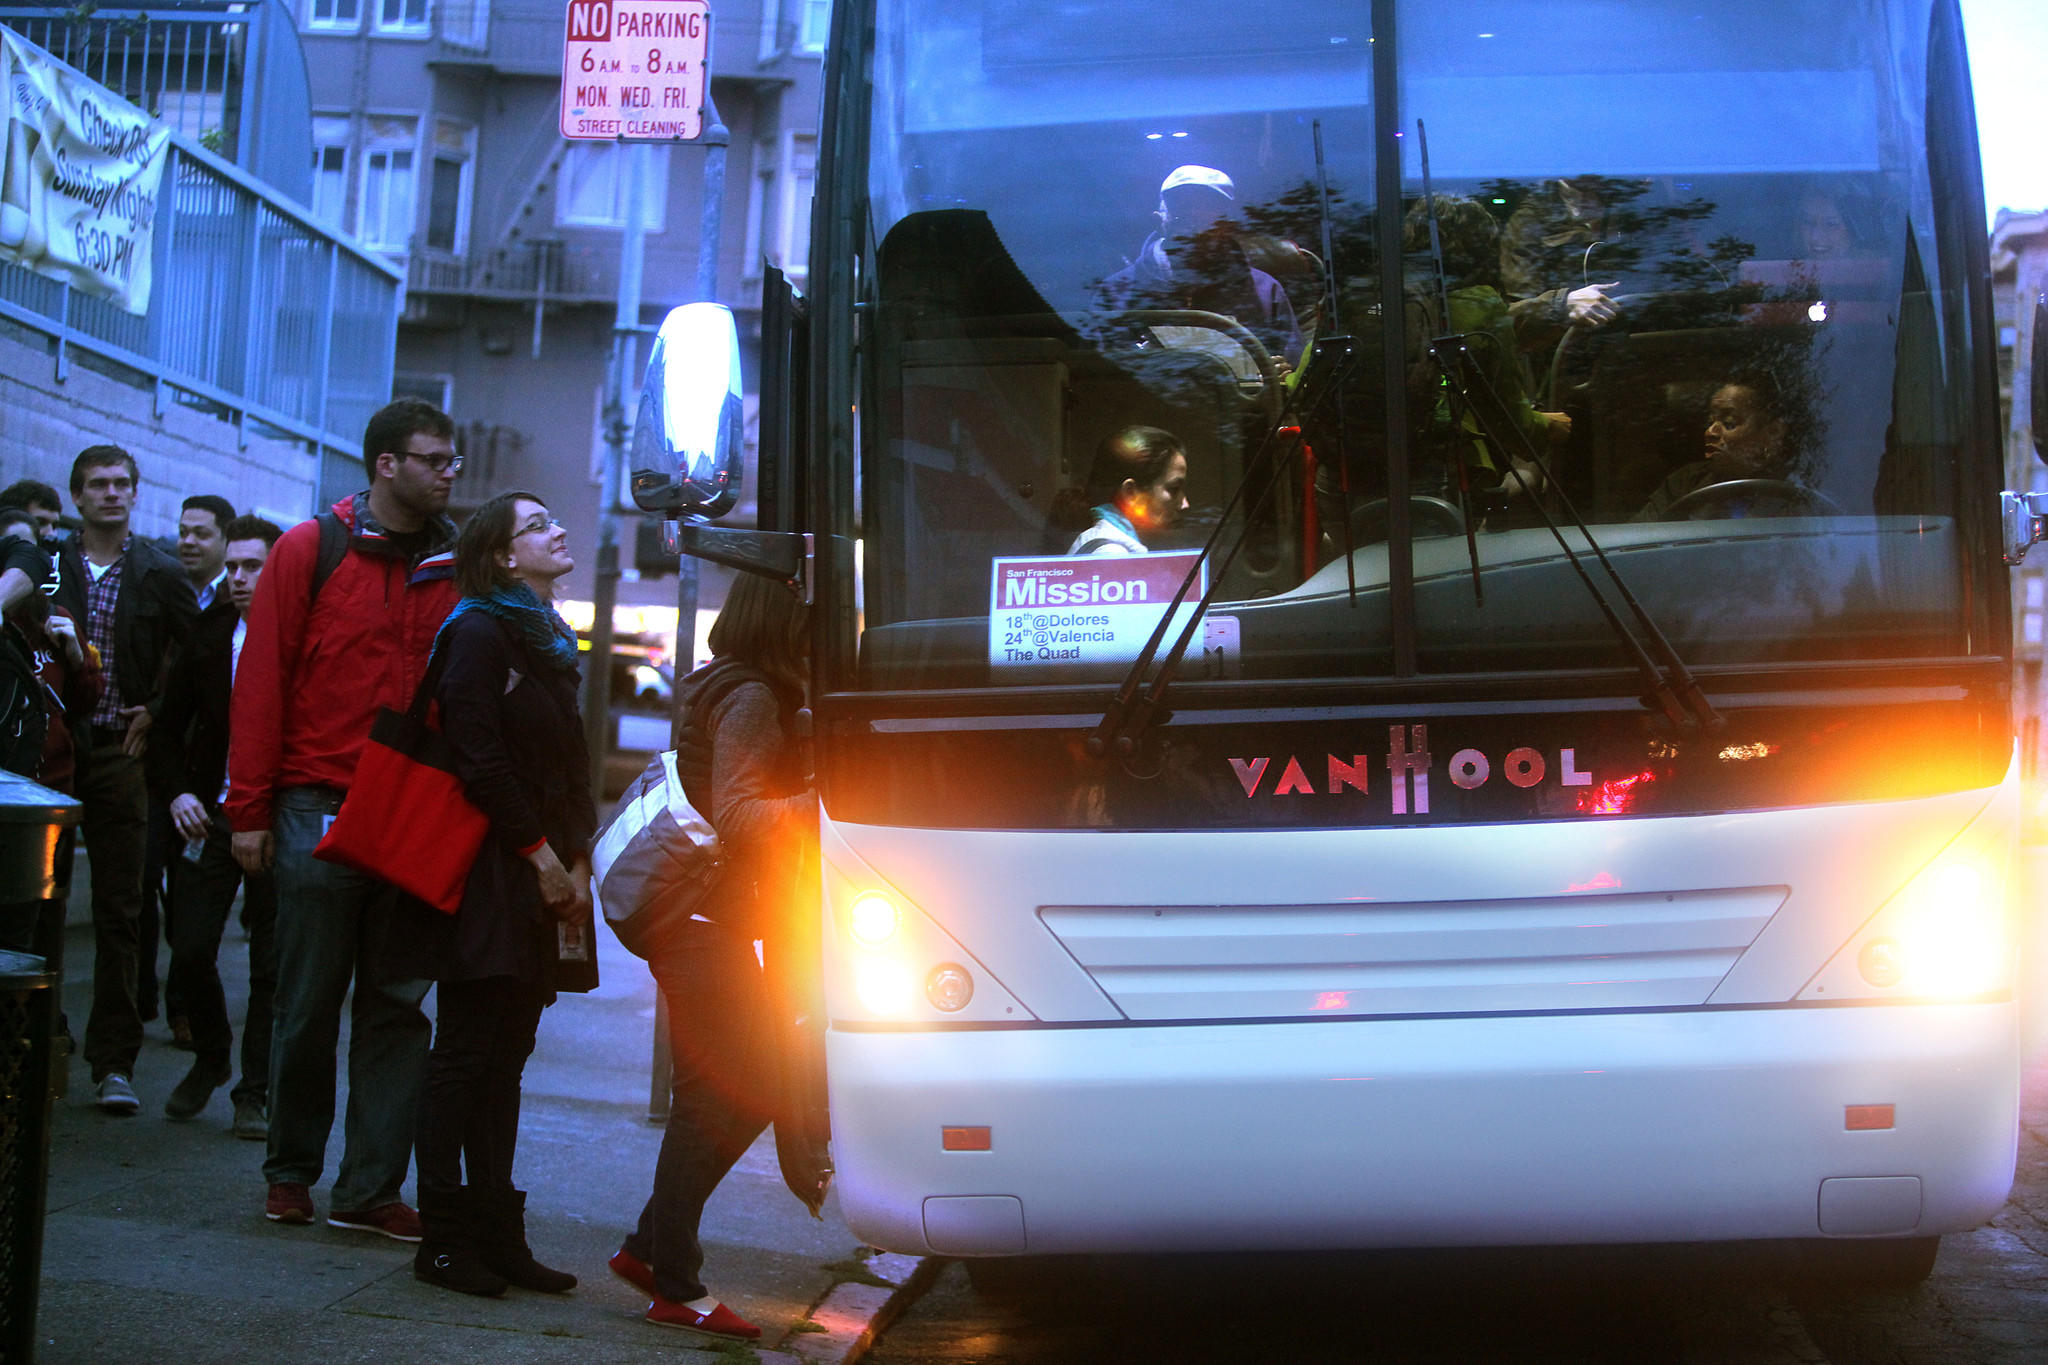 A shuttle to the Google campus loading passengers in San Francisco during a morning commute in 2012.